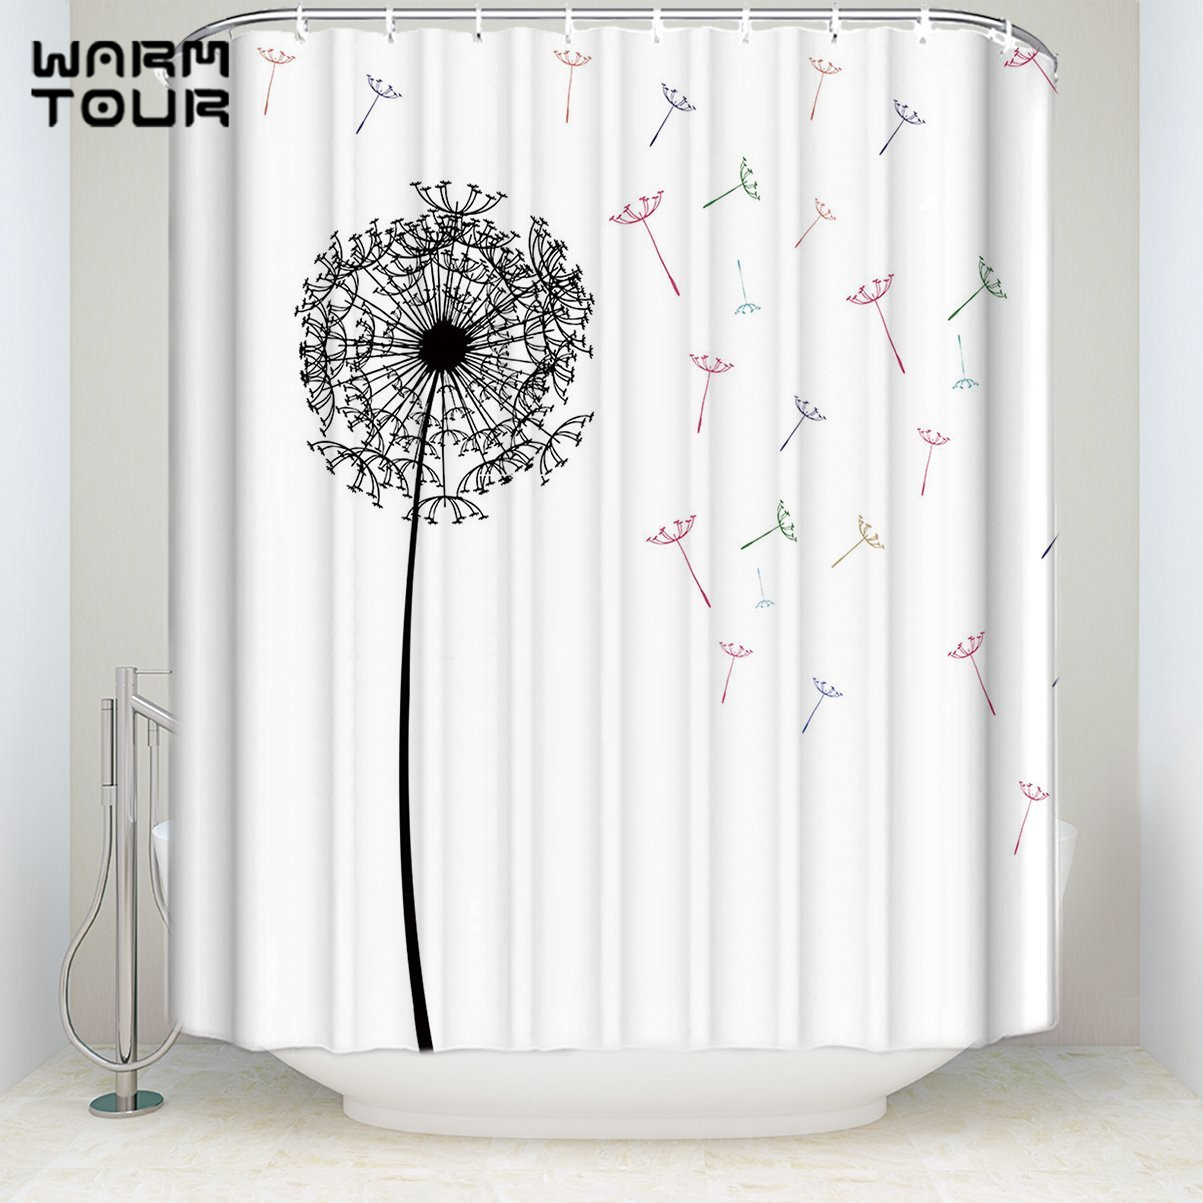 Us 16 23 30 Off Extra Long Fabric Bath Shower Curtains Funny Dandelion White Welcome Mildew Resistant Bathroom Decor Sets With Hooks In Shower